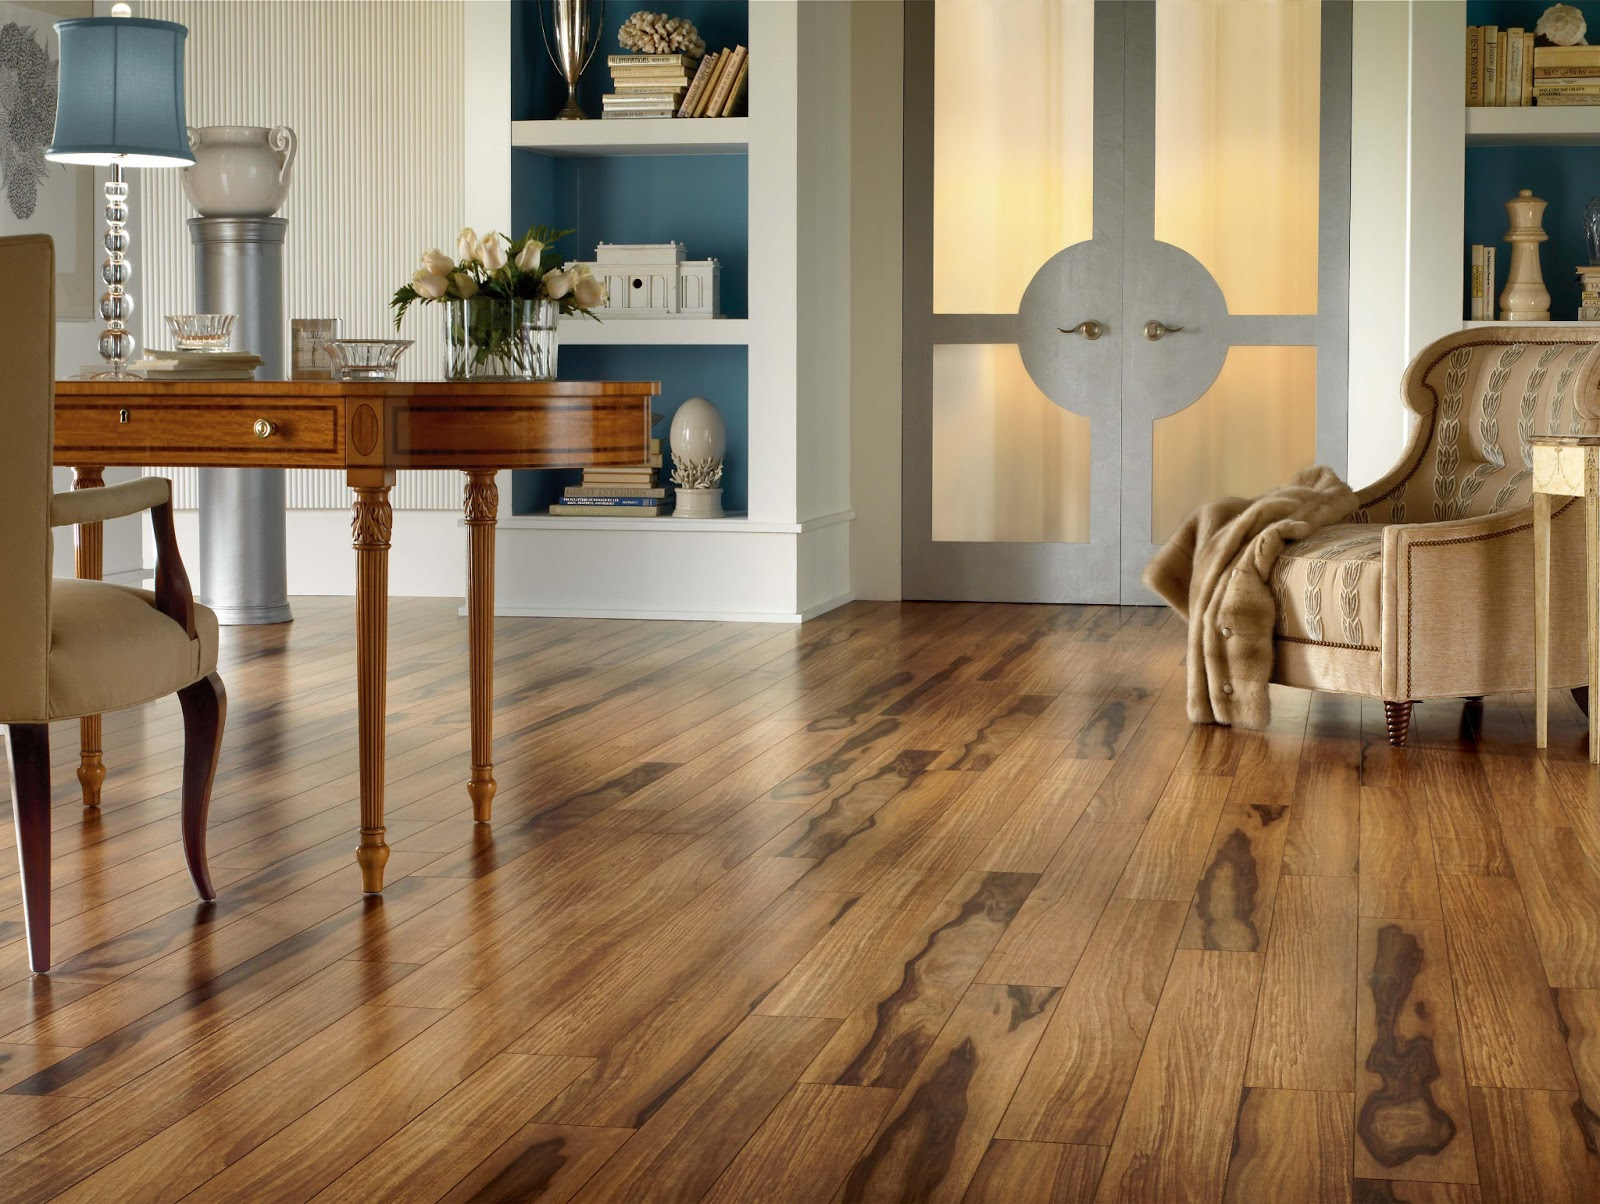 Wood or wood like which flooring should i choose dzine for Laminate flooring designs